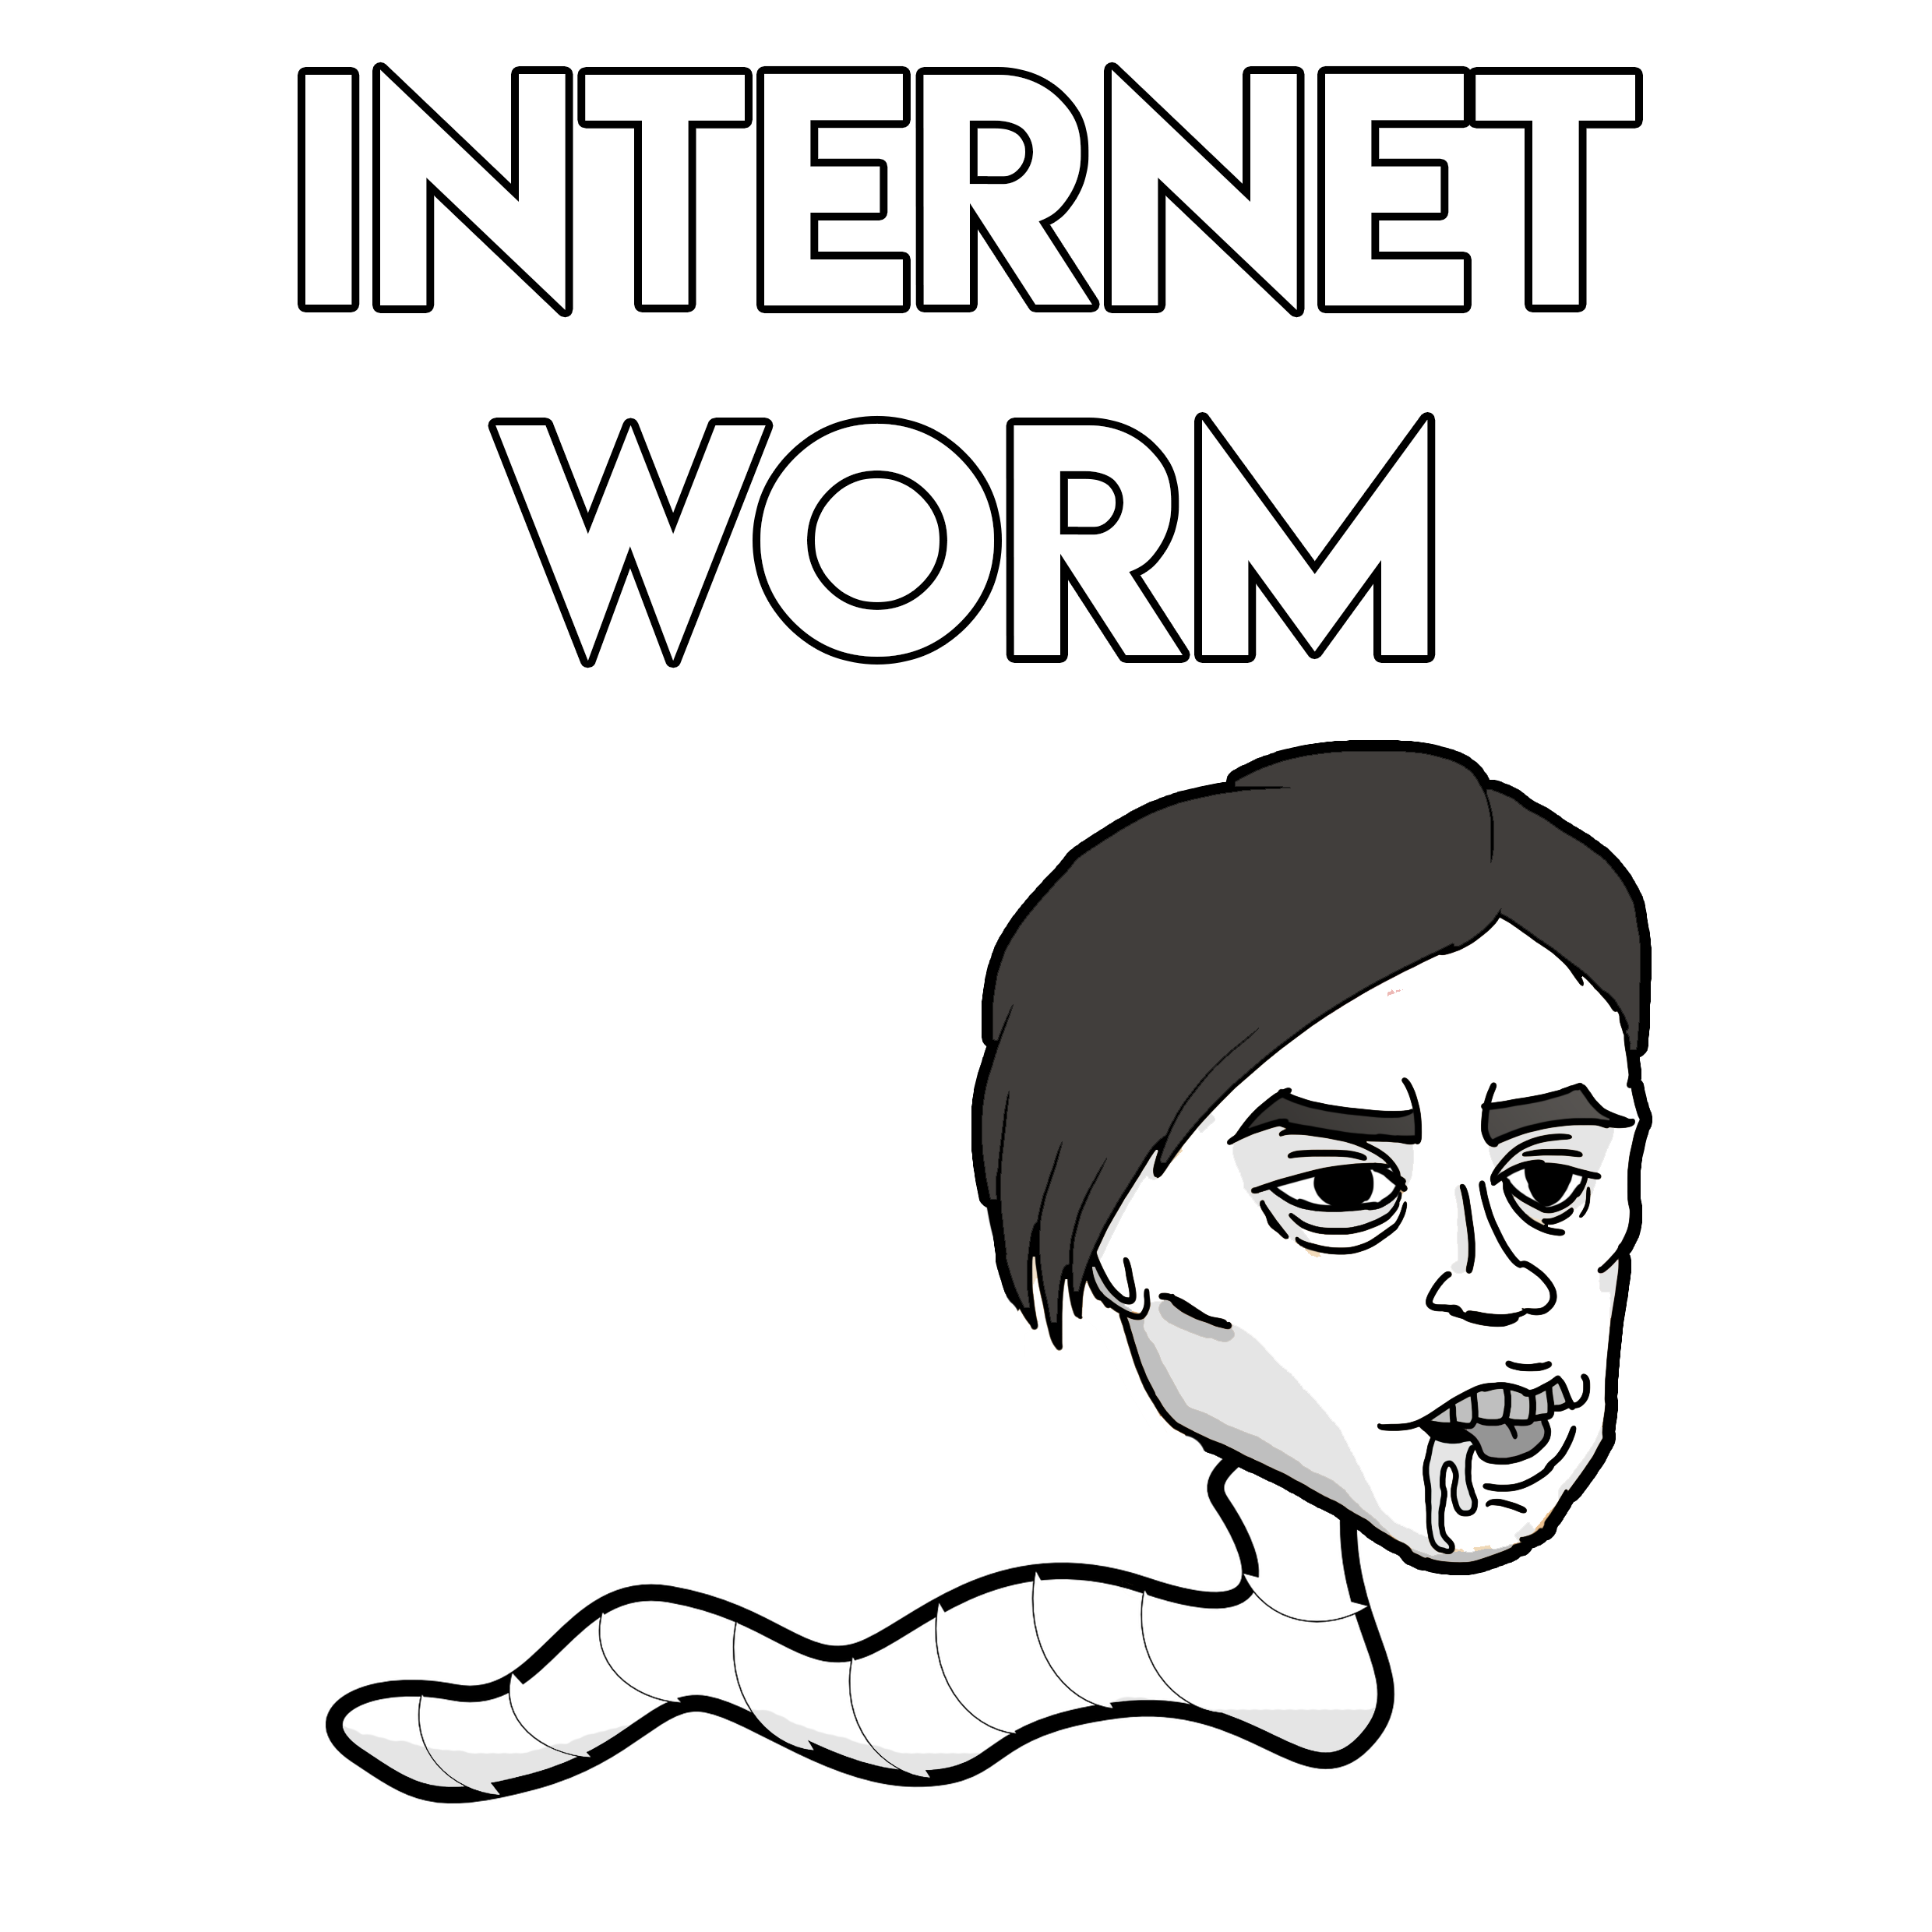 internet_worm.png